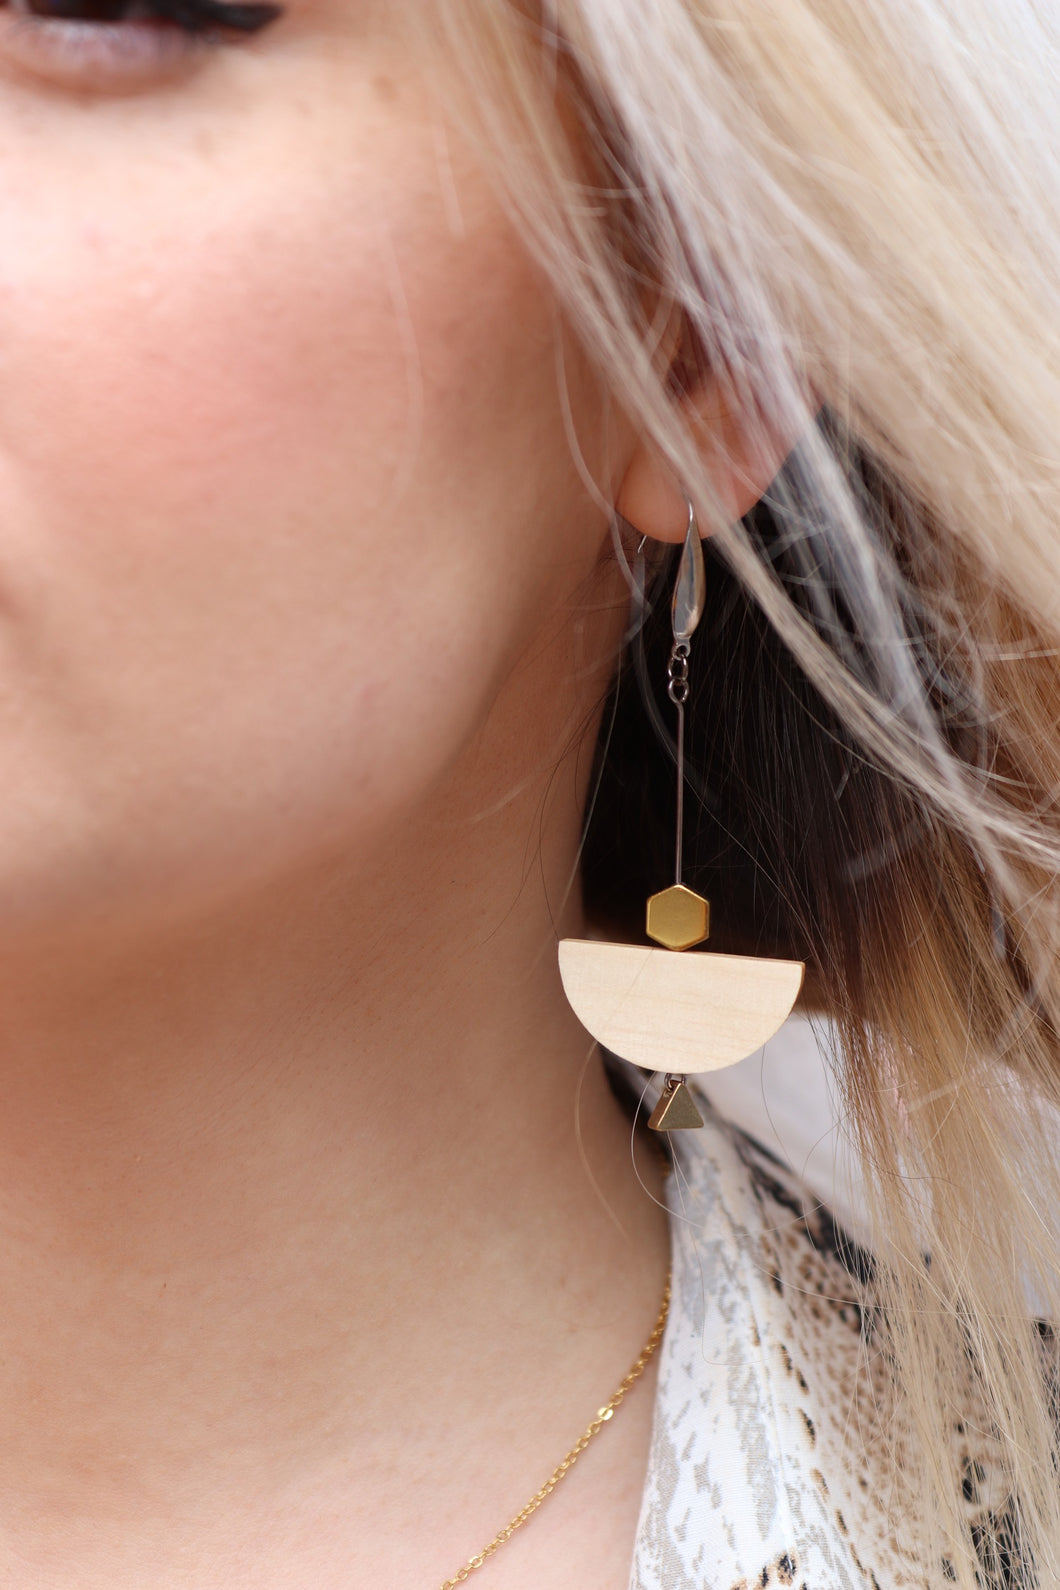 Geometric and Bare Earrings